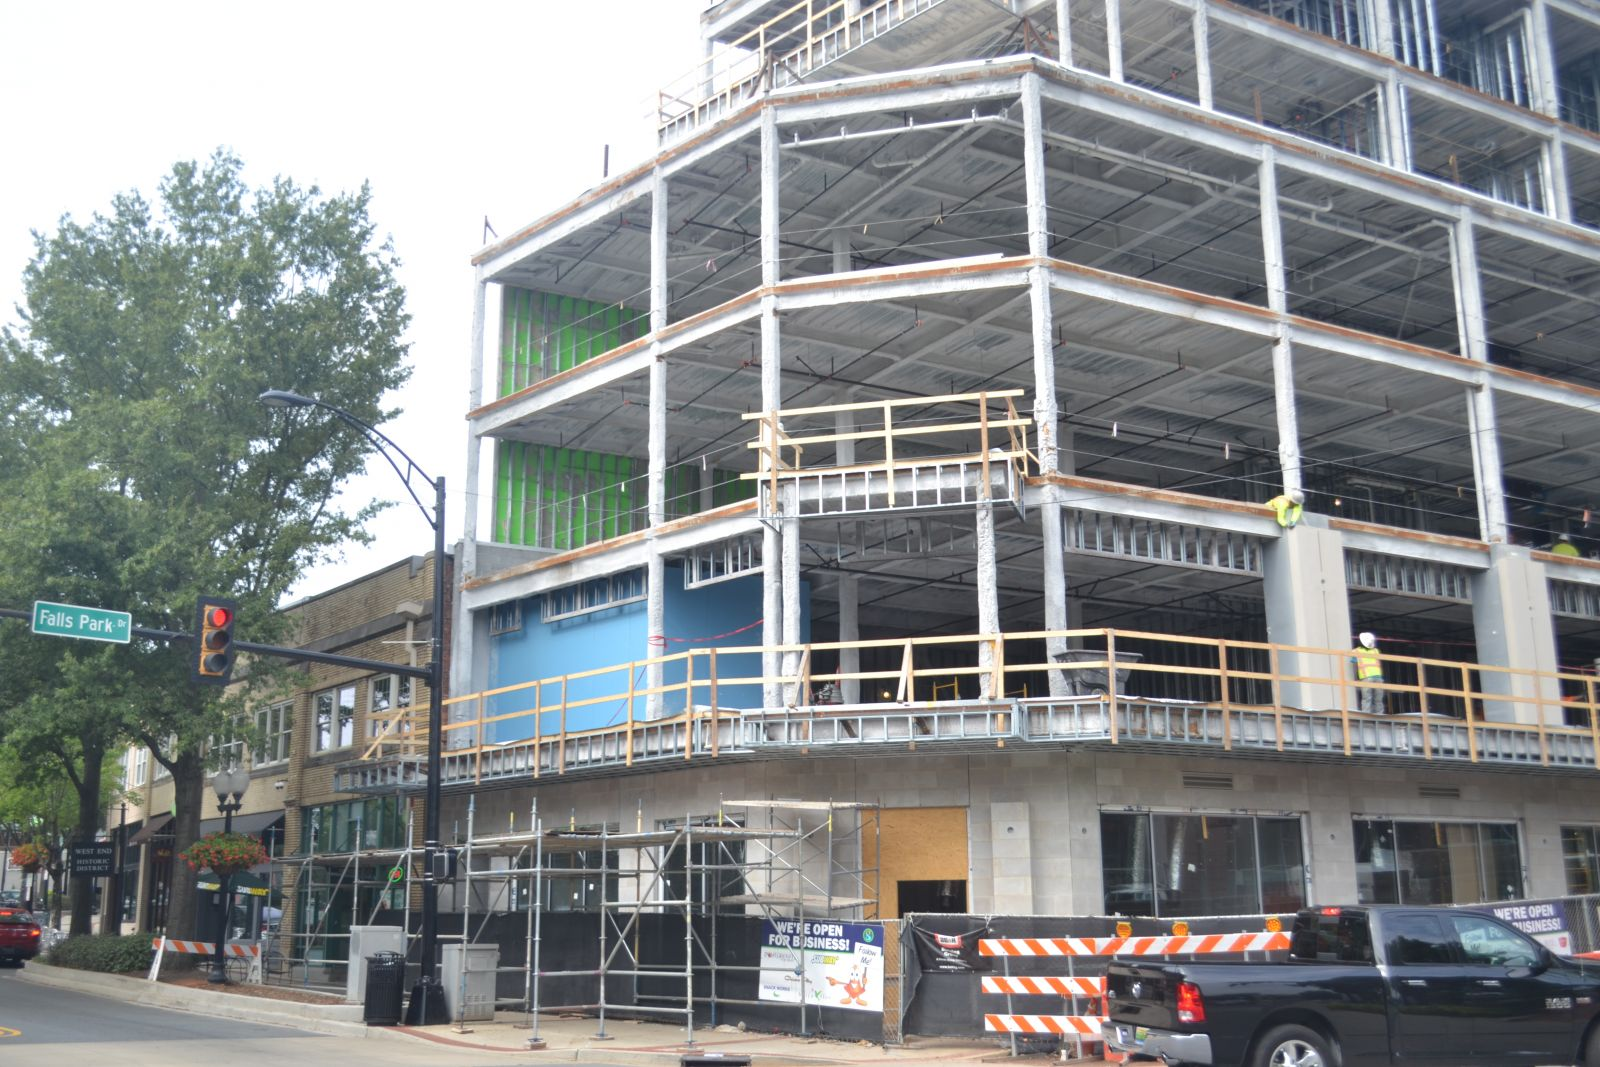 Duke Food Productions expects to have its headquarters moved to 600 S. Main St. early next year. (Photo by Teresa Cutlip)